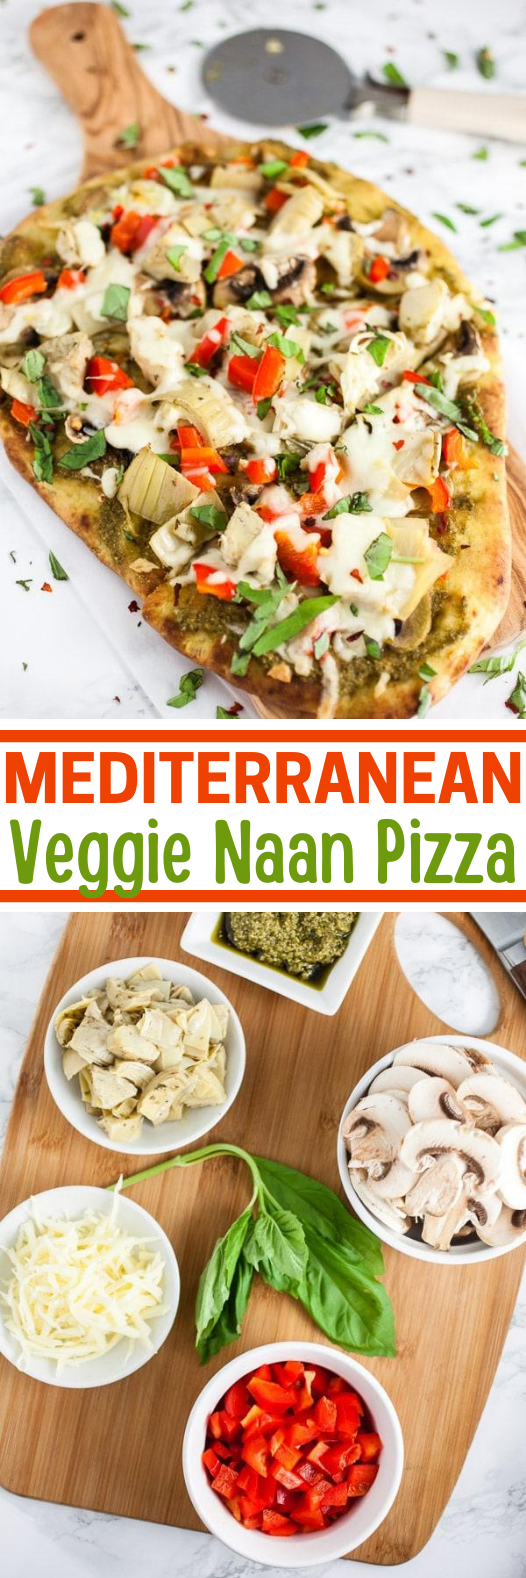 Mediterranean Veggie Naan Pizza #vegetarian #recipe #meatless #pizza #healthy